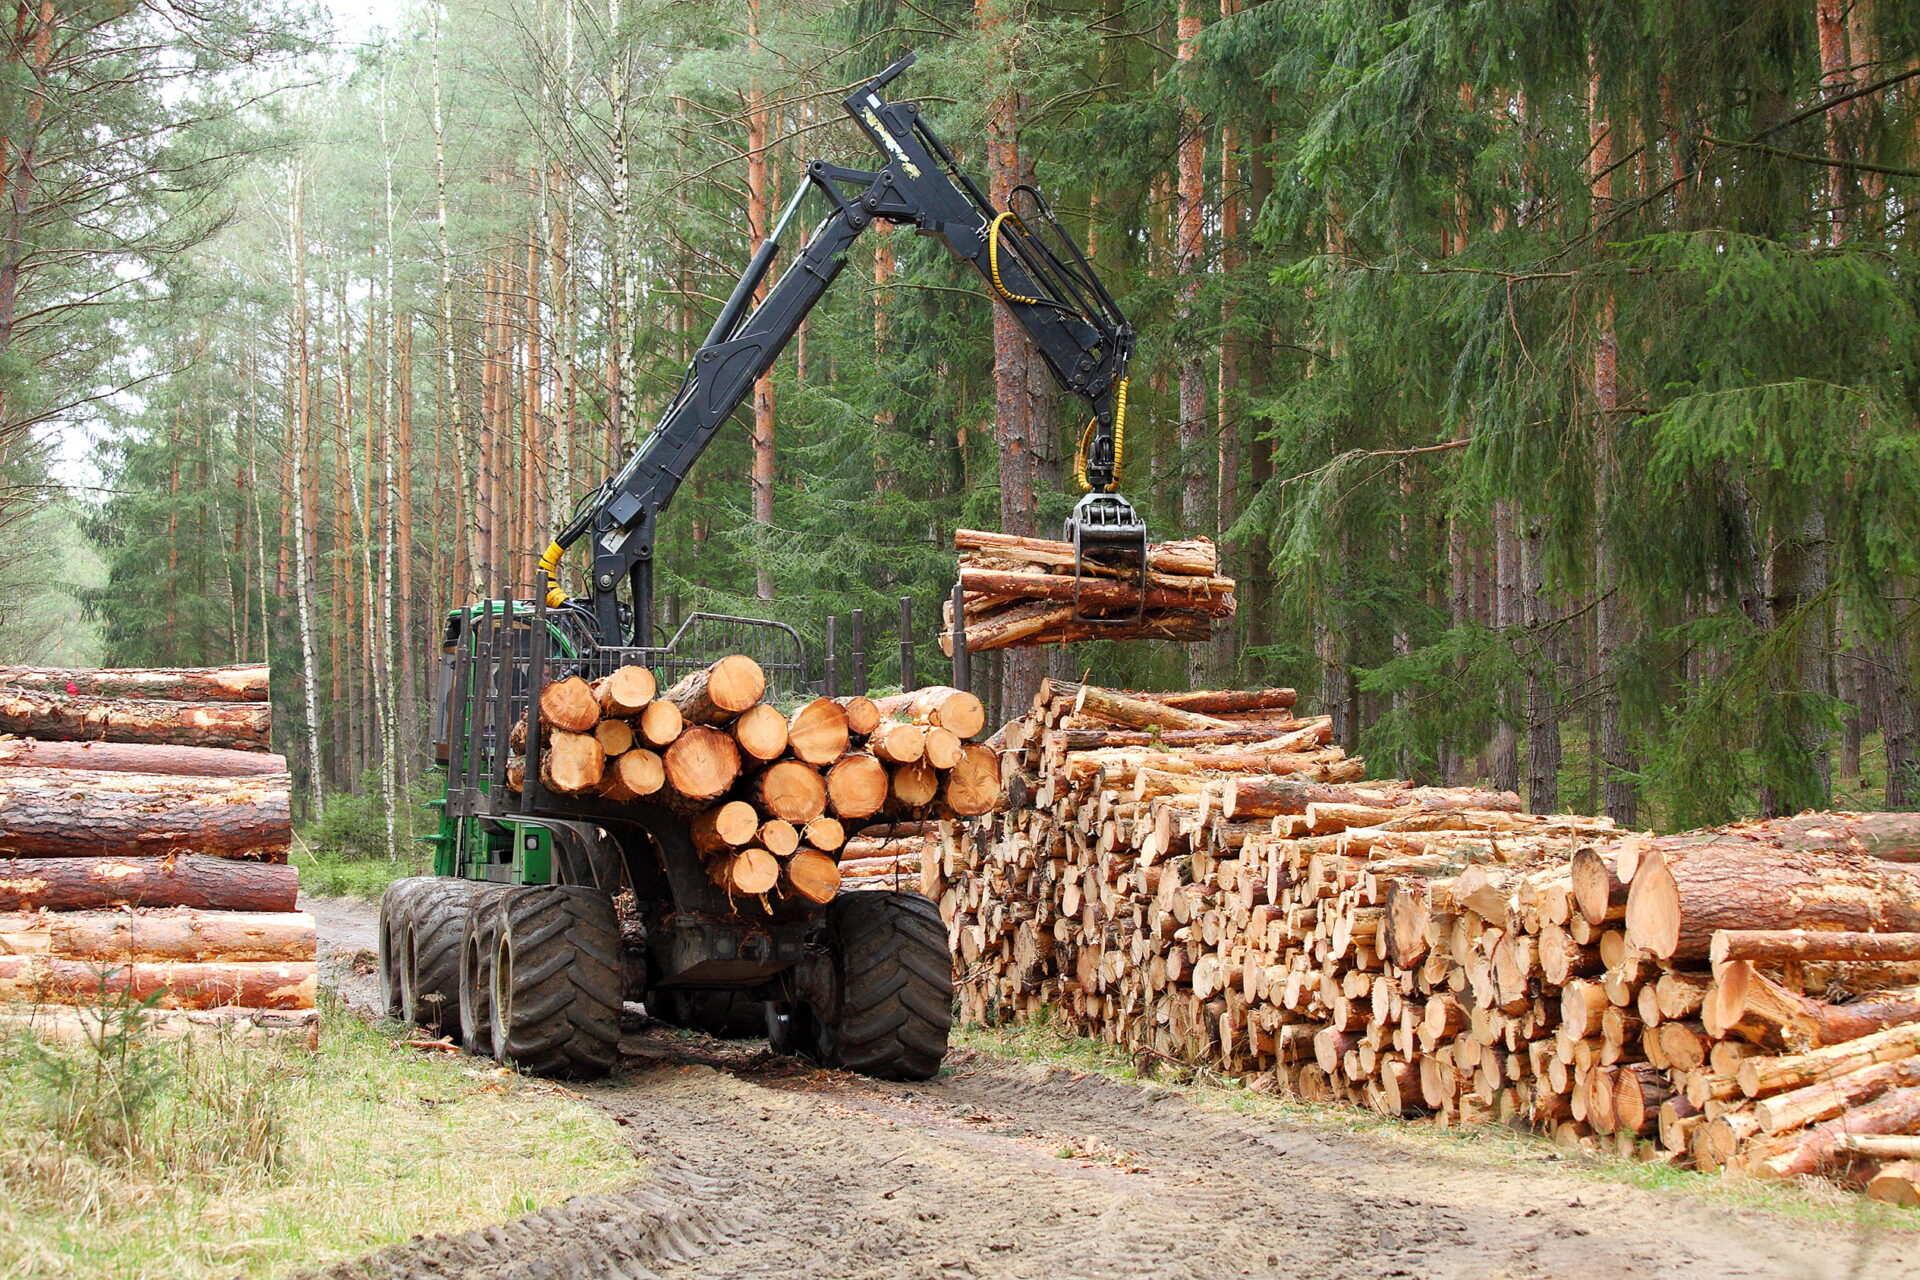 The harvester working in a forest. Harvest of timber